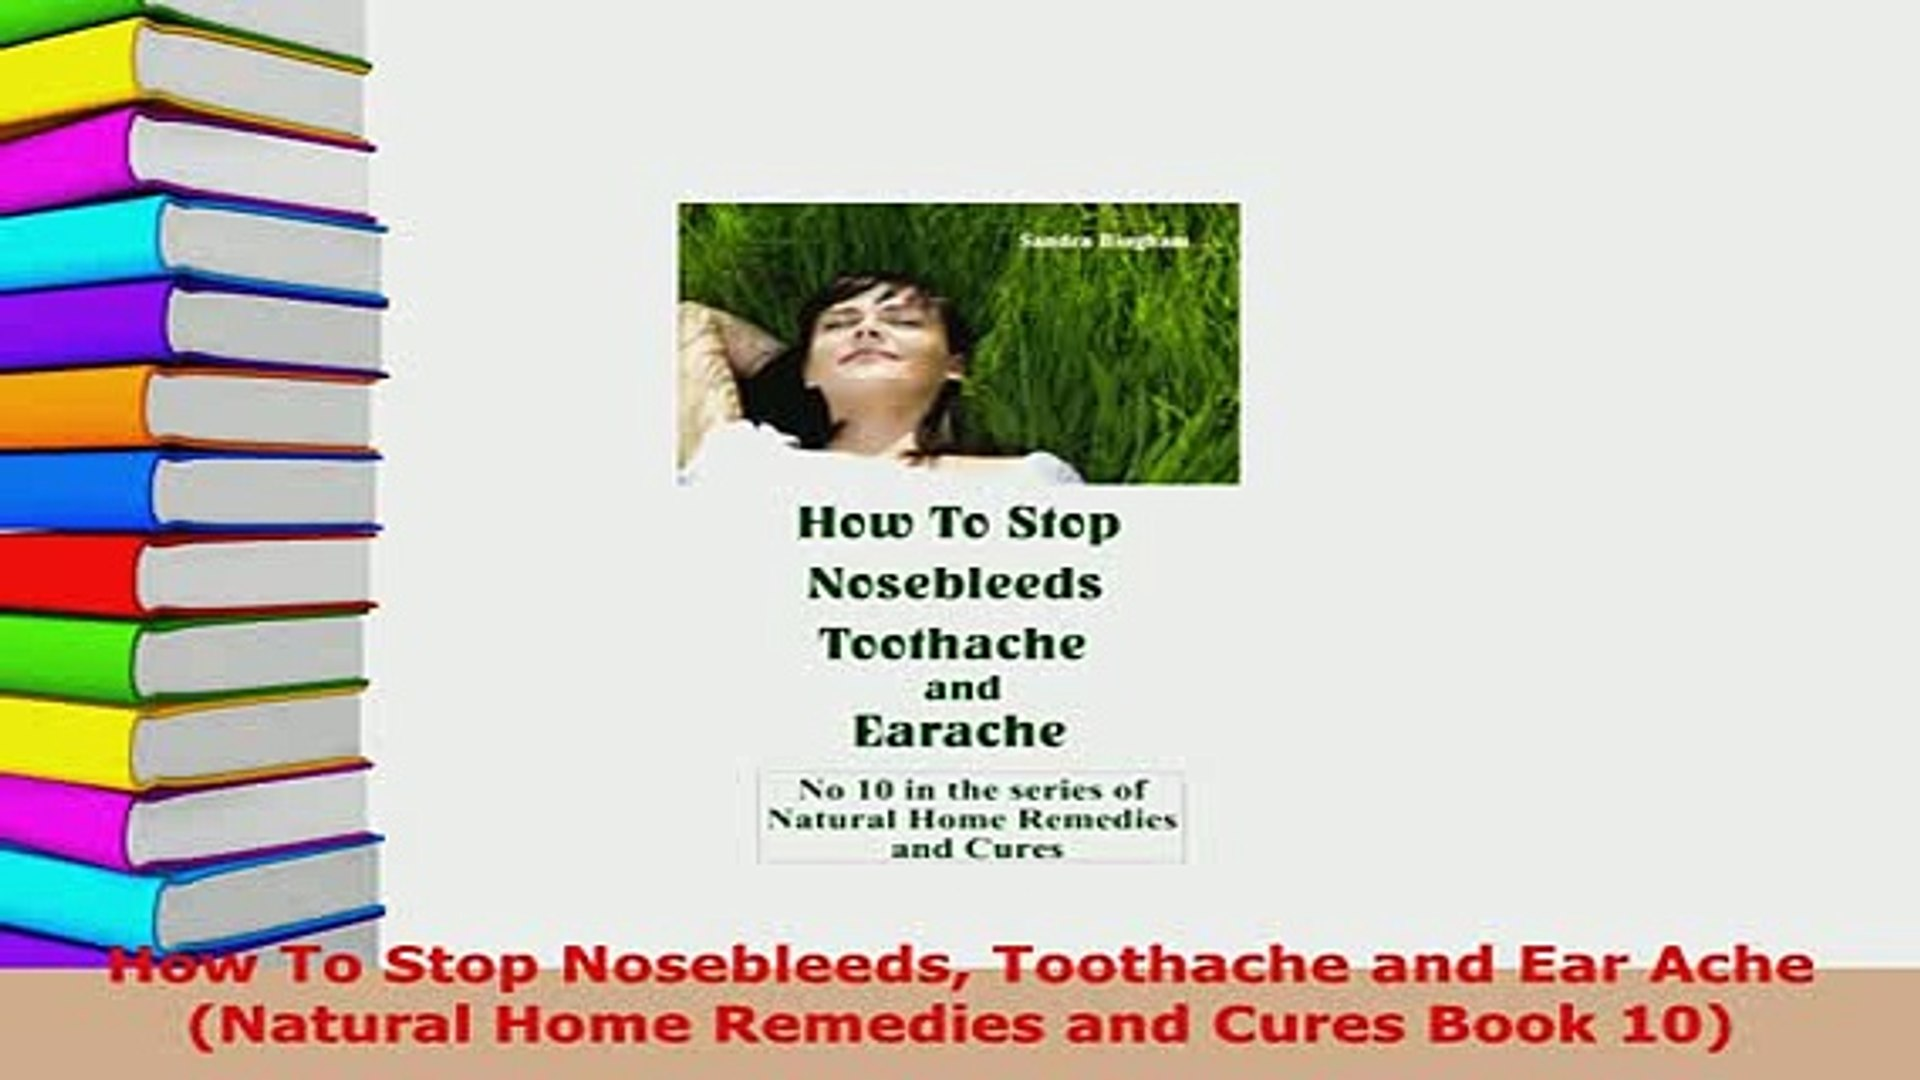 Download How To Stop Nosebleeds Toothache And Ear Ache Natural Home Remedies And Cures Book 10 Ebook